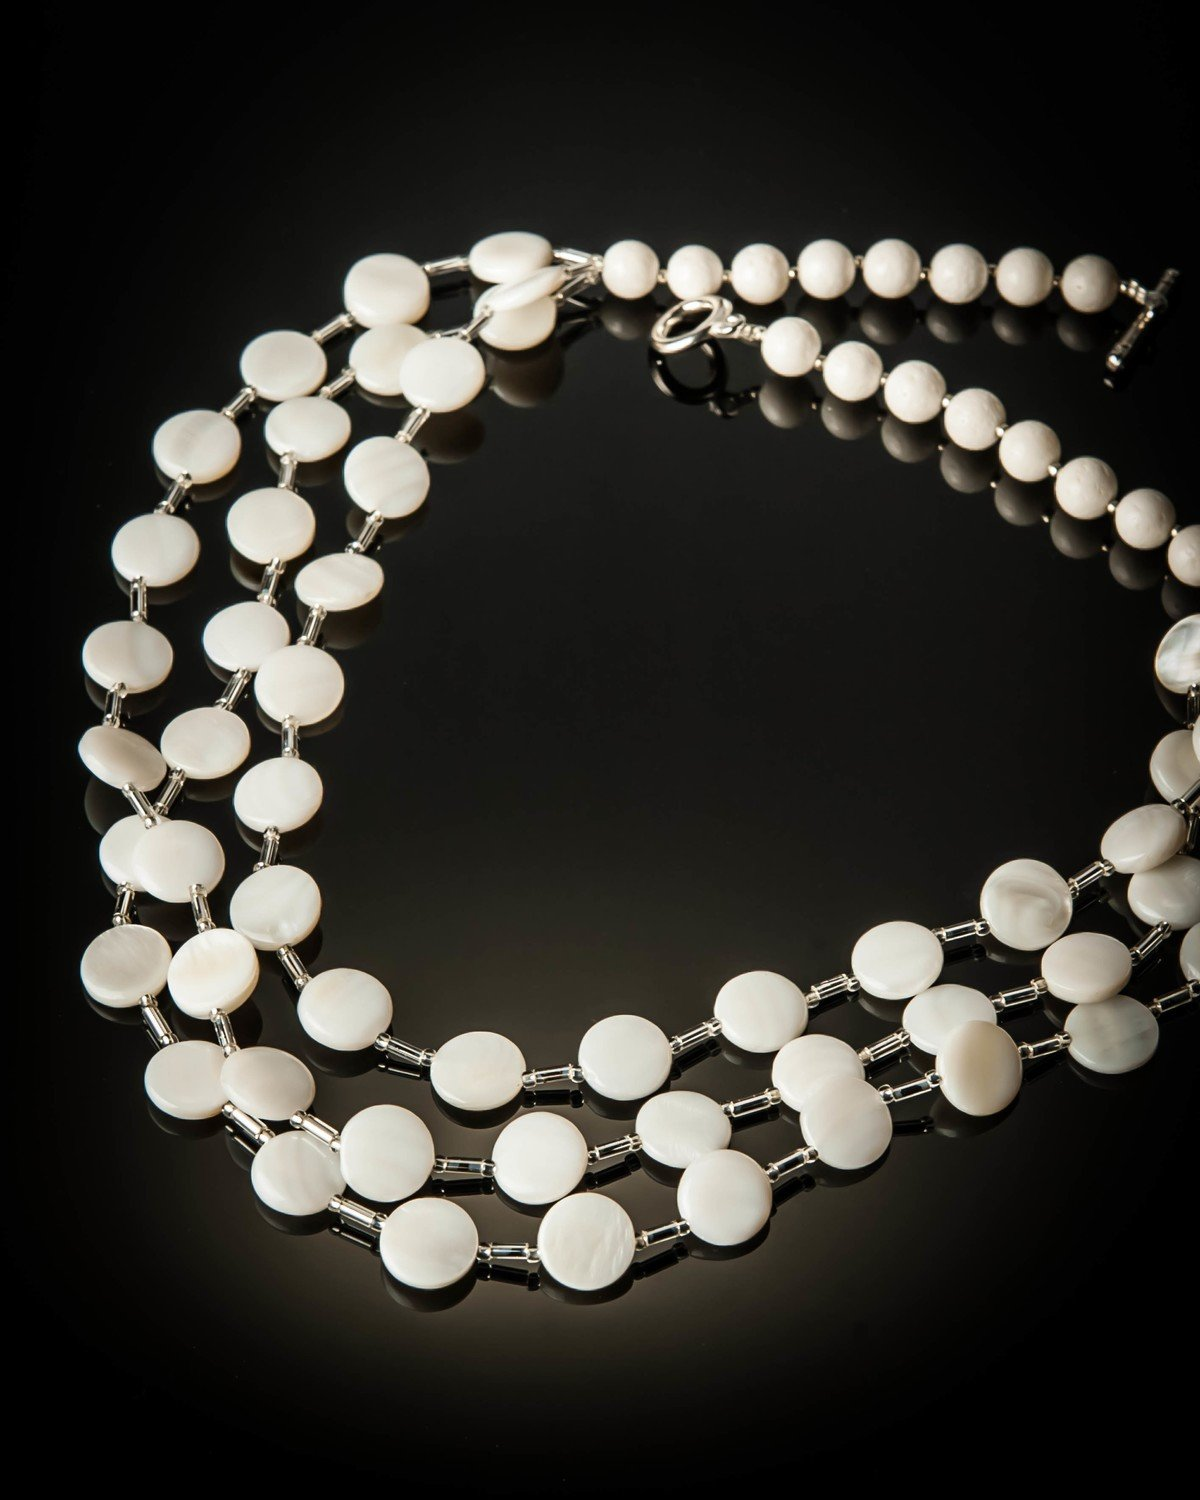 Mother of Pearl Layered with White Coral Necklace